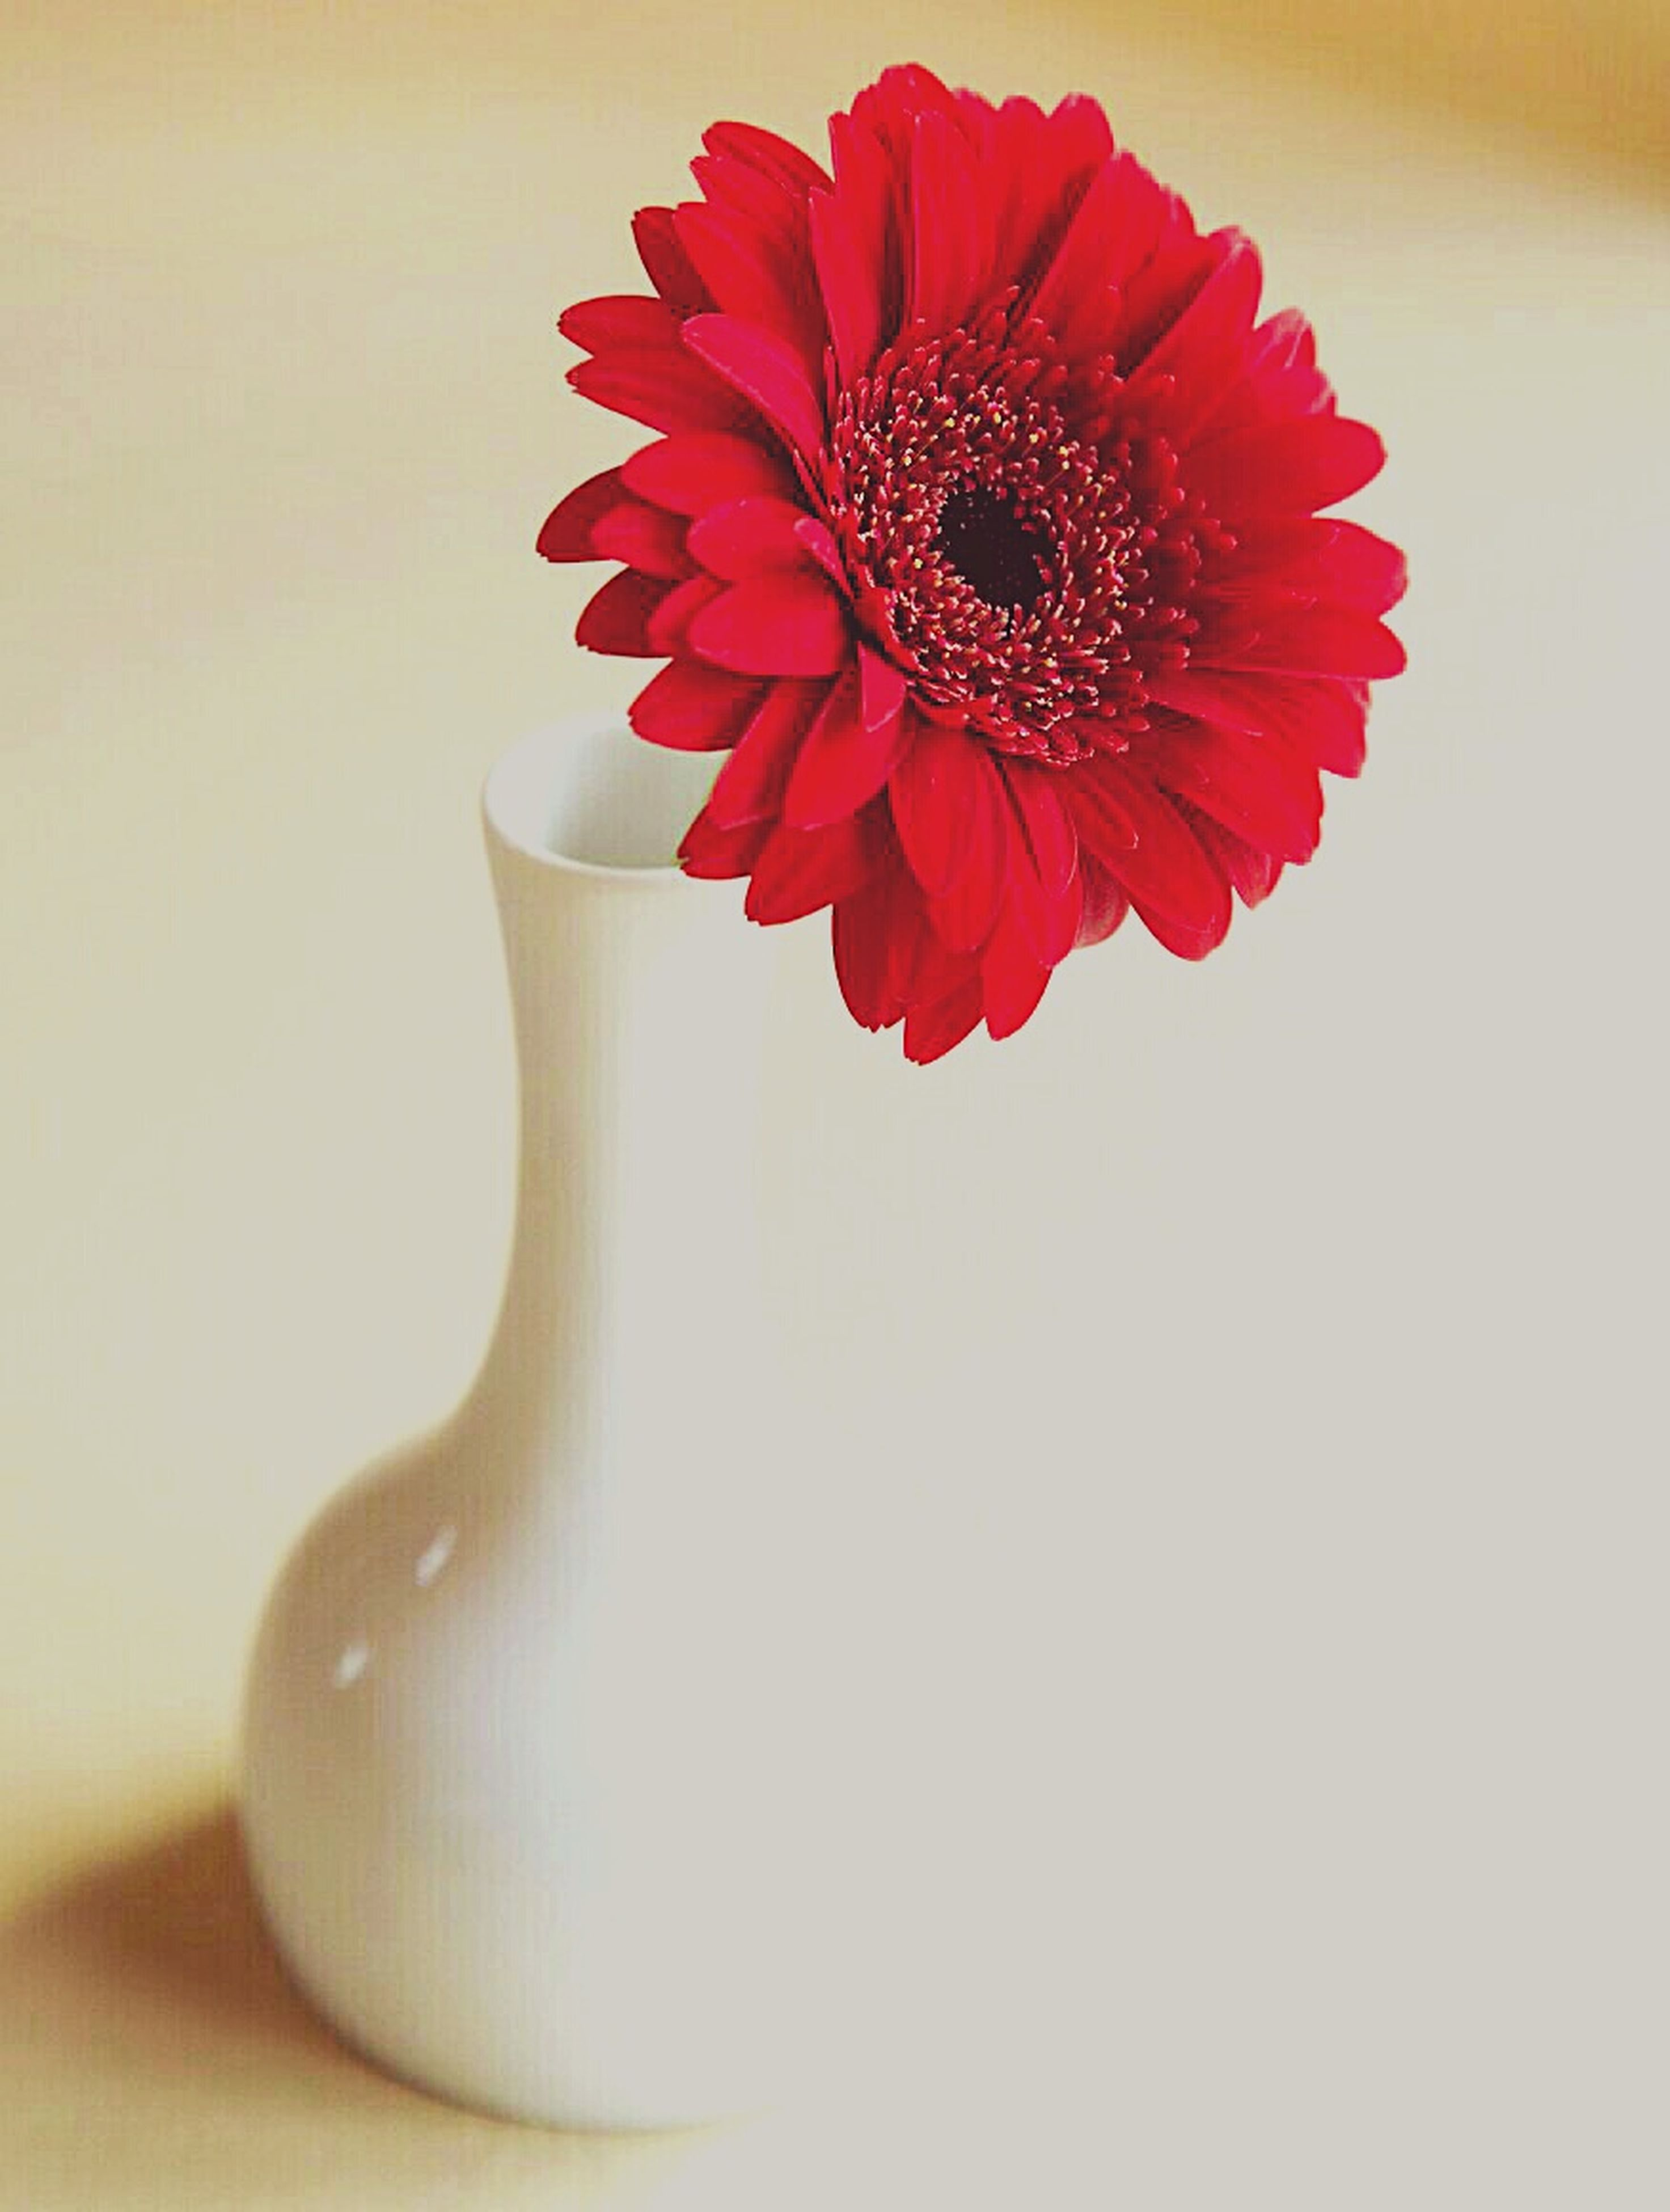 red, flower, studio shot, petal, flower head, white background, close-up, single flower, fragility, copy space, freshness, single object, indoors, no people, still life, beauty in nature, pollen, focus on foreground, white color, blooming